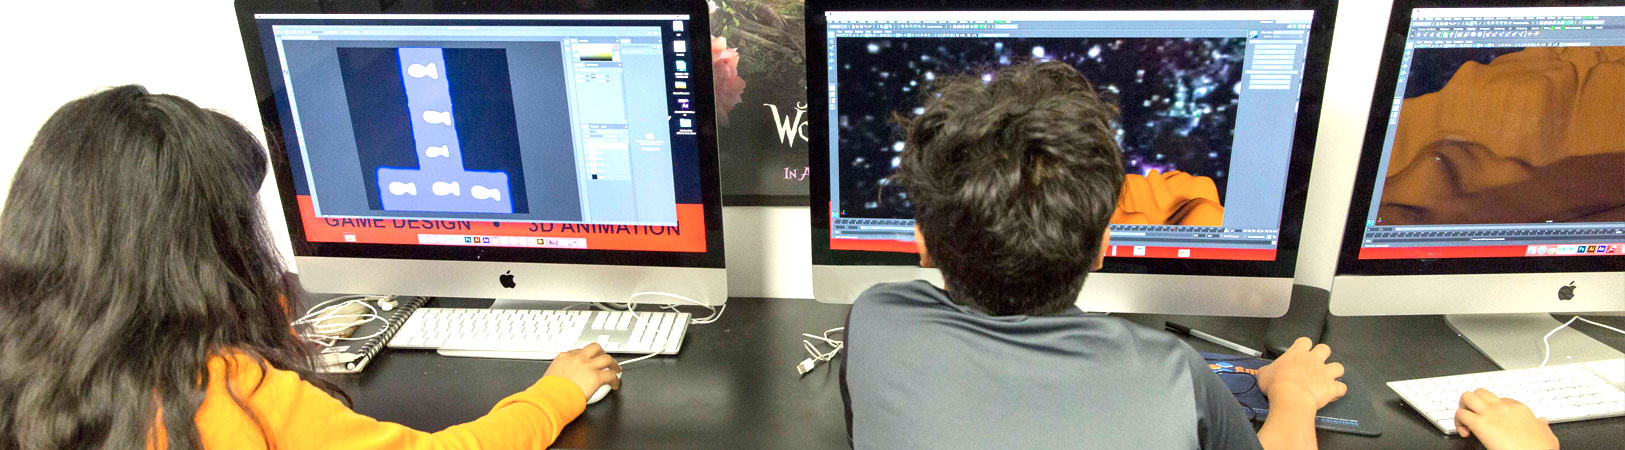 NYFA Summer camp students on computers learning game design